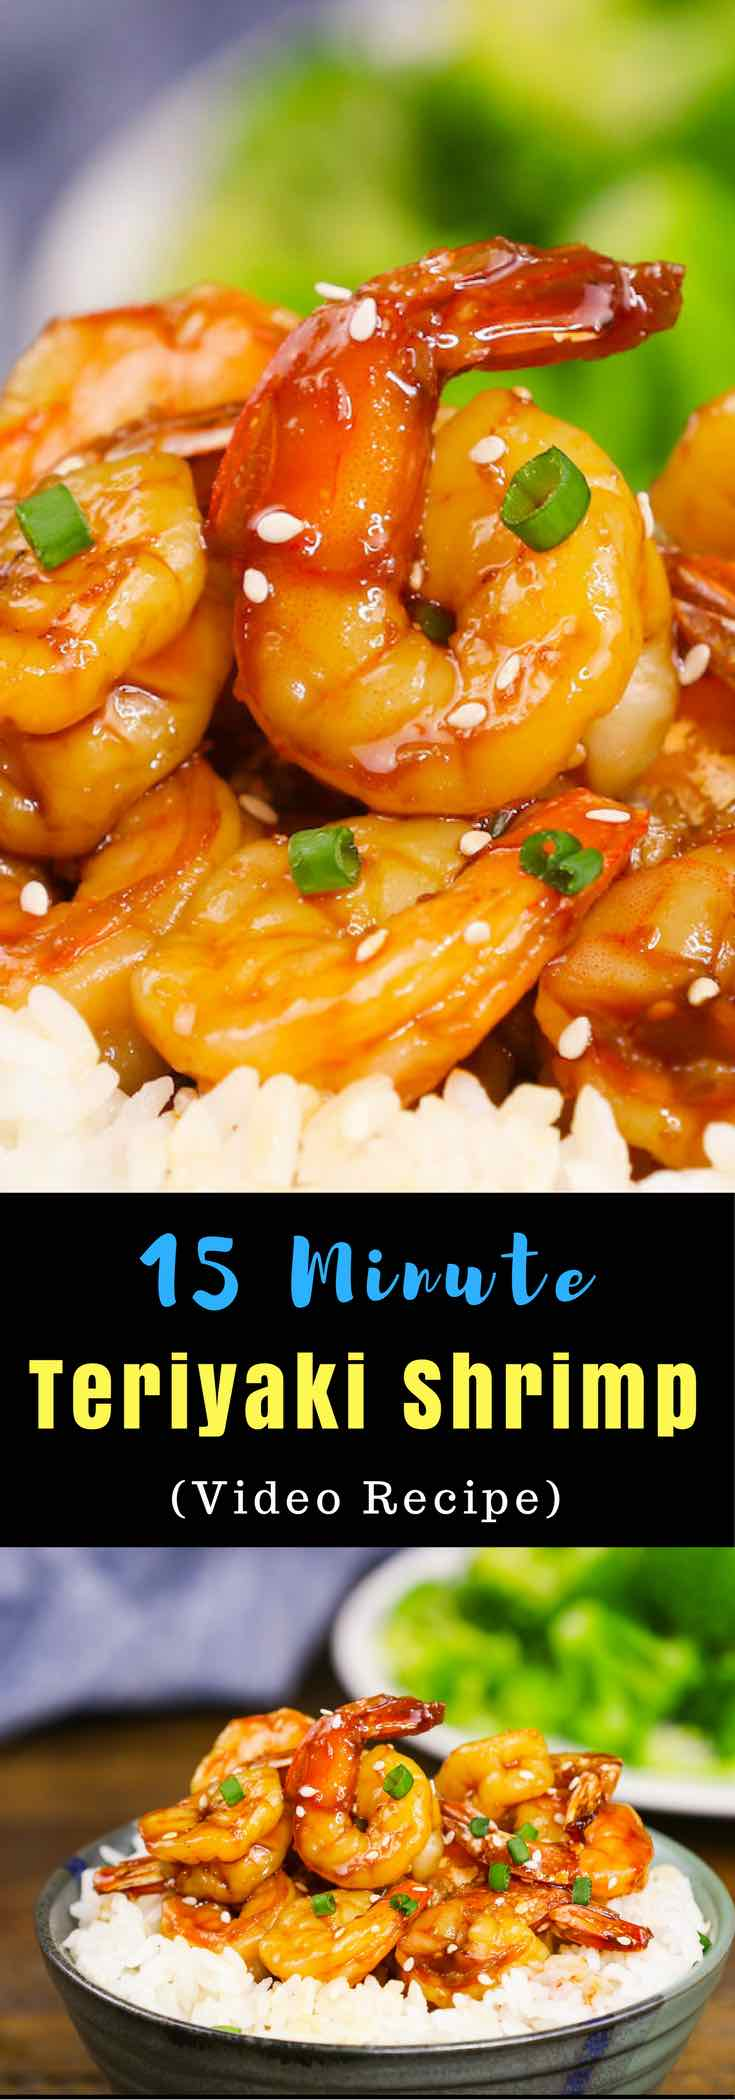 Mouthwatering teriyaki shrimp is sticky and slightly sweet, perfect as a quick weeknight dinner you can make in 15 minutes with under 300 calories.